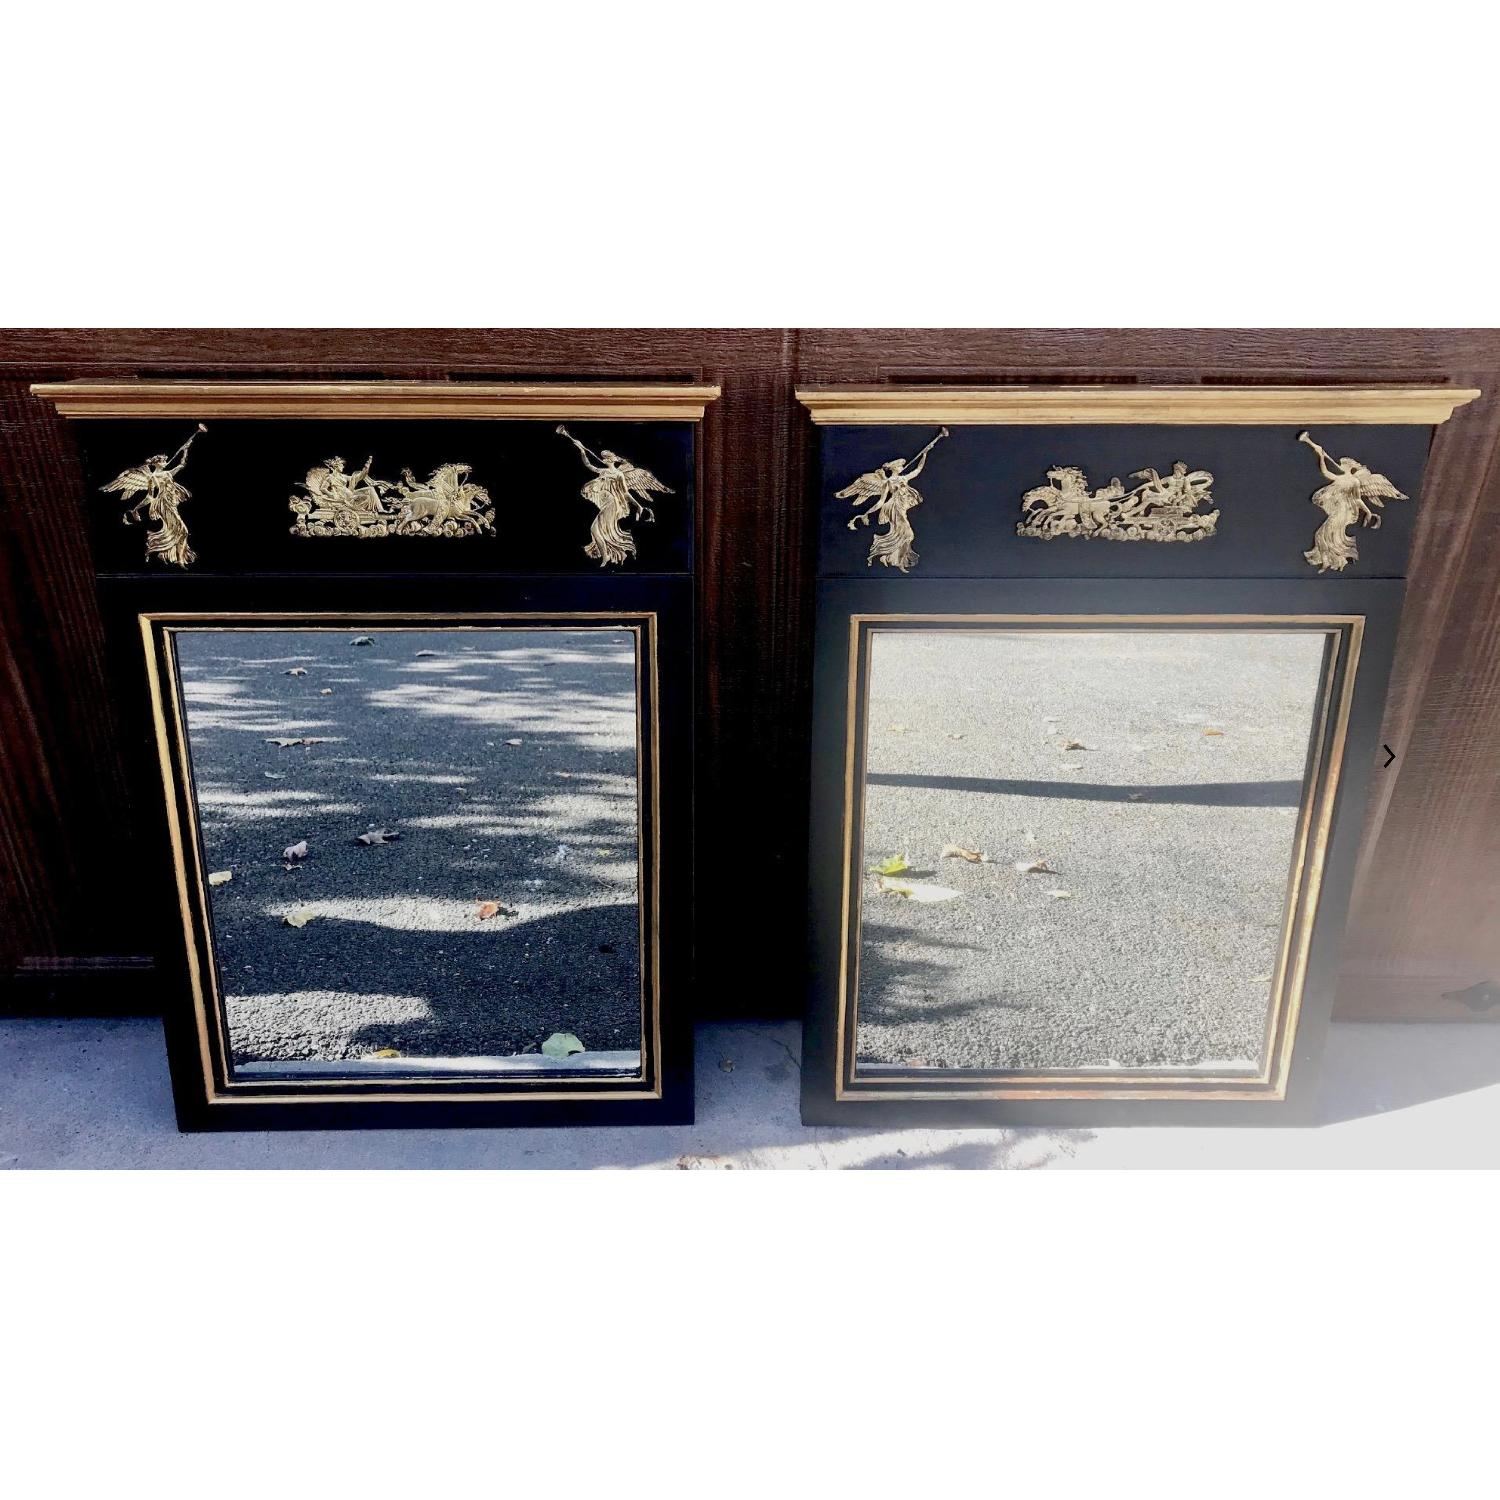 Antique Palladio Neoclassical Trumeau Mirrors